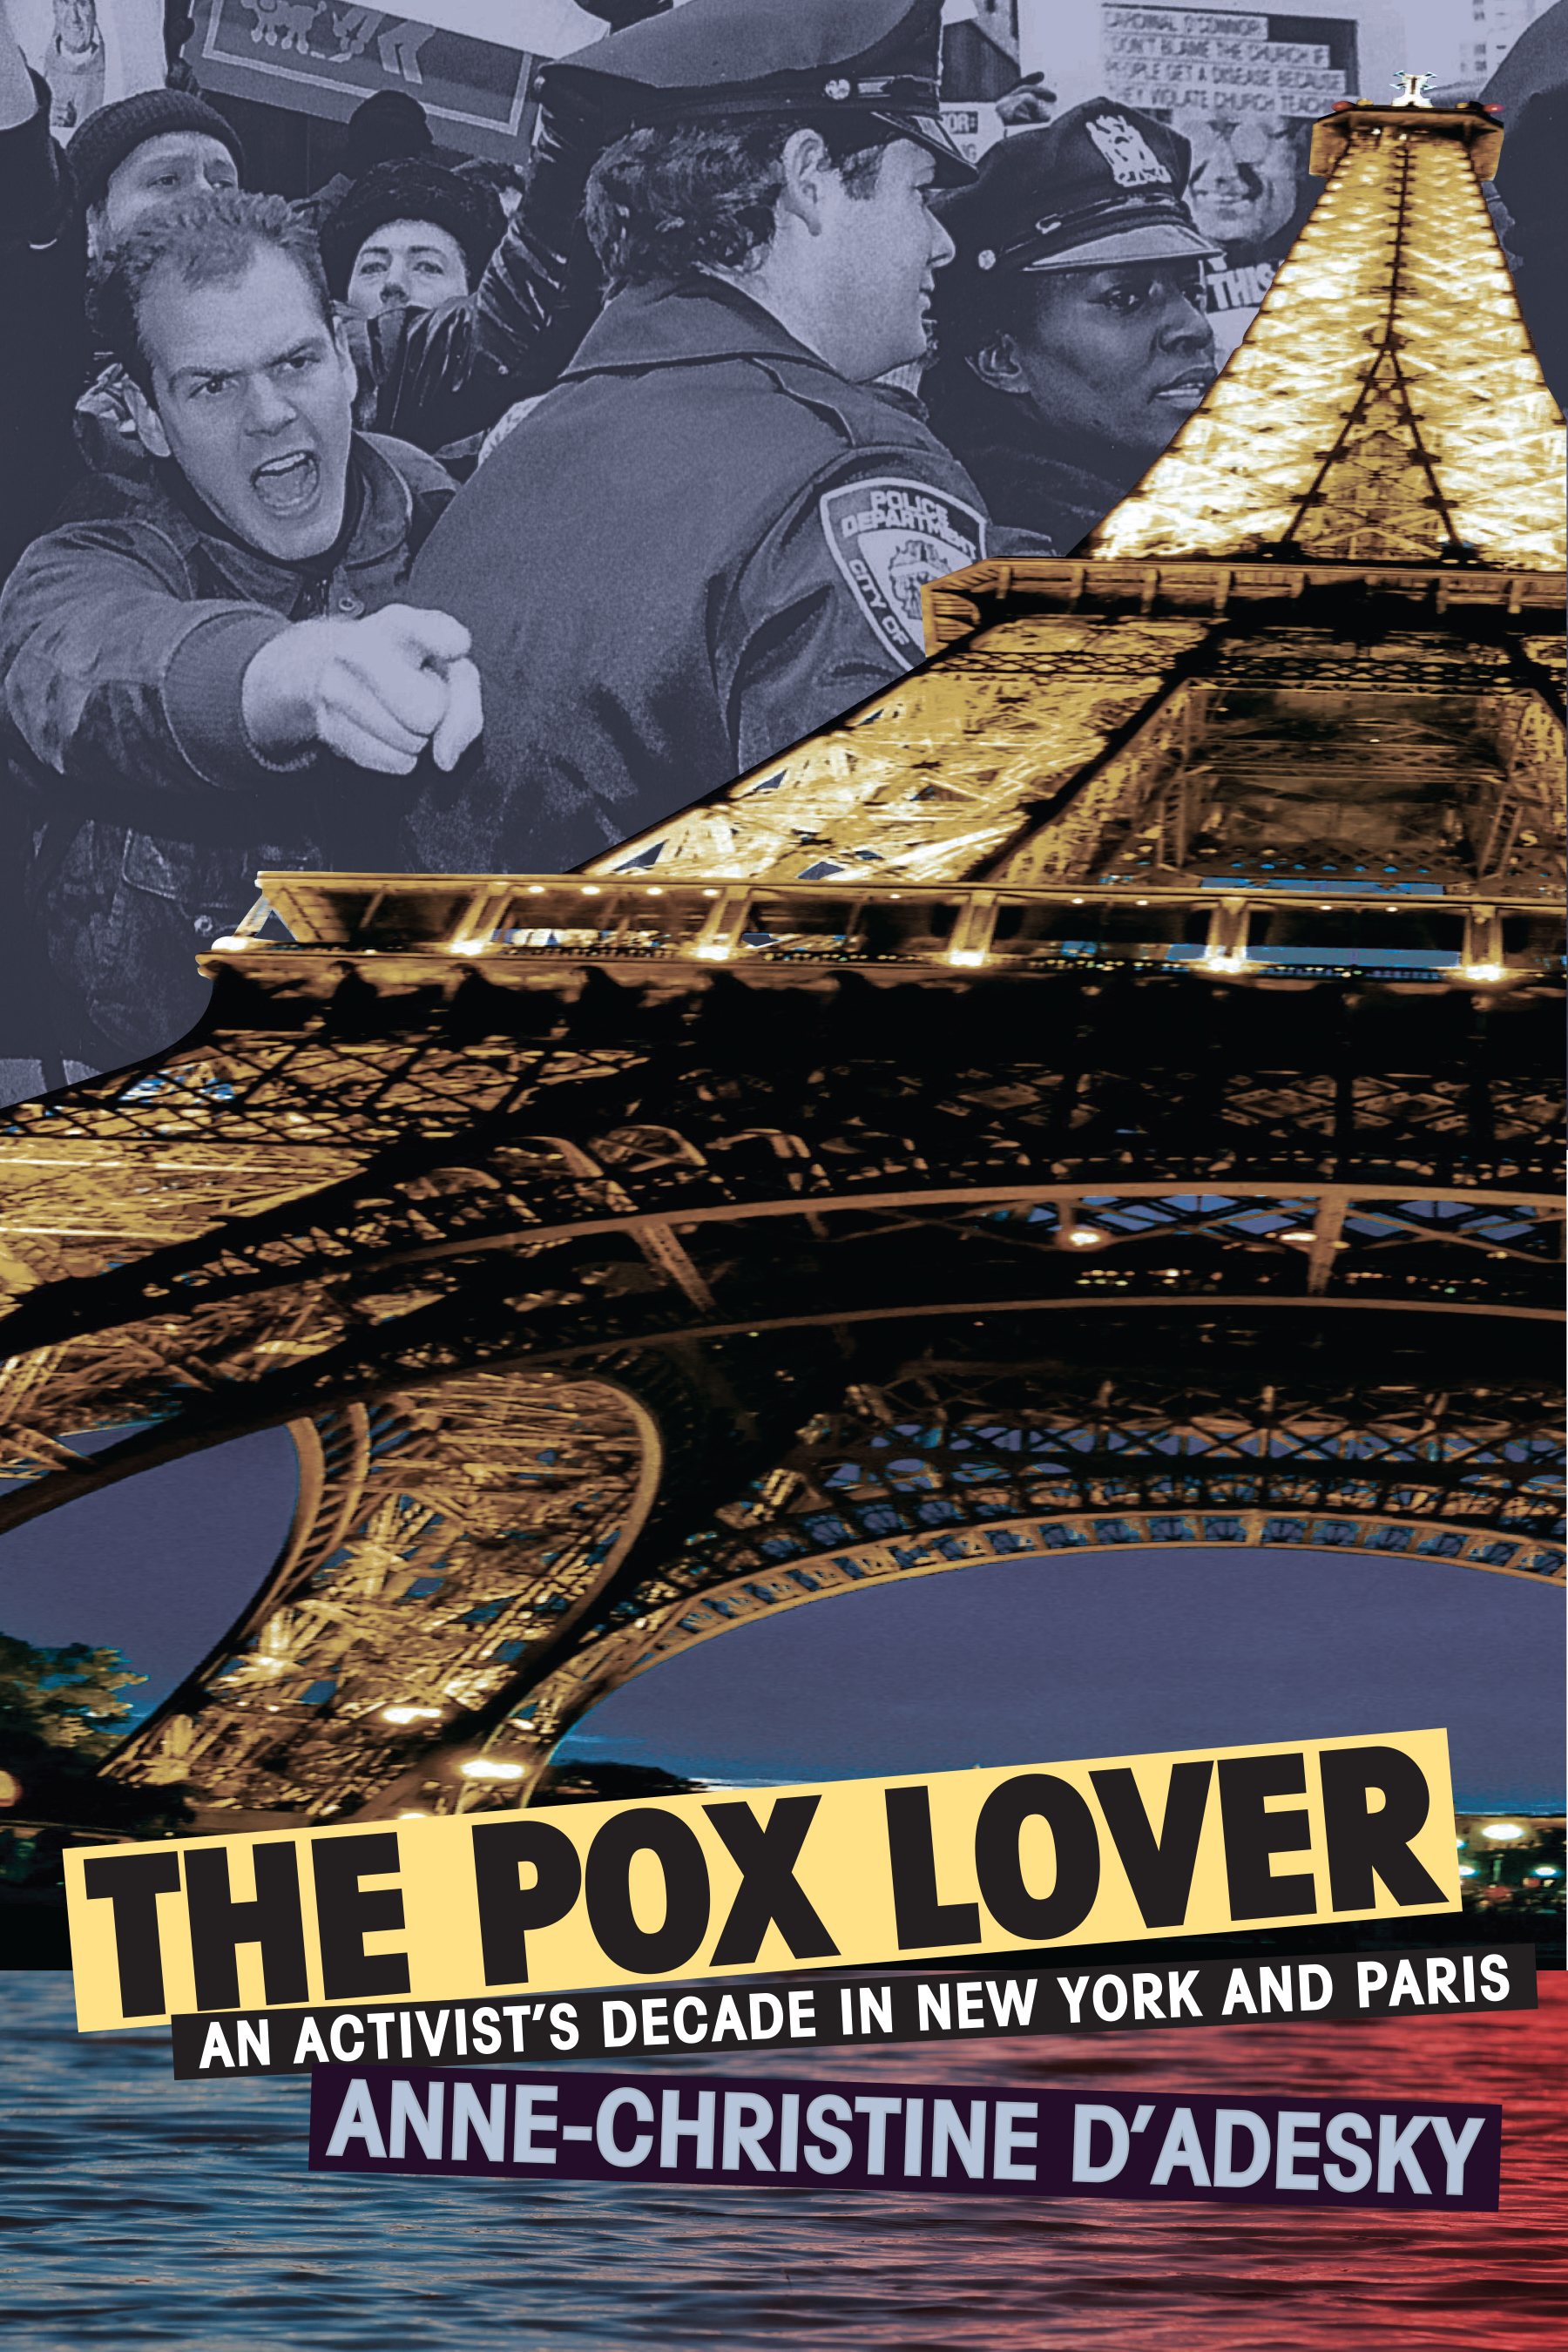 """The Pox Lover: An Activist's Decade in New York and Paris - Called """"a masterpiece"""" by Michelle Tea, The Pox Lover is a personal history of the turbulent 1990s in New York City and Paris by Anne-christine d'Adesky, a pioneering American AIDS journalist, lesbian activist, and daughter of French-Haitian elites. In an account that is by turns searing, hectic, and funny, d'Adesky remembers """"the poxed generation"""" of AIDS — their lives, their battles, and their determination to find love and make art in the heartbreaking years before lifesaving protease drugs arrived.D'Adesky takes us through a fast-changing East Village: squatter protests and civil disobedience lead to all-night drag and art-dance parties, the fun-loving Lesbian Avengers organize dyke marches, and the protest group ACT UP stages public funerals. Traveling as a journalist to Paris, an insomniac d'Adesky trolls the Seine, encountering waves of exiles fleeing violence in the Balkans, Haiti, and Rwanda. As the last of the French Nazis stand trial and the new National Front rises in the polls, d'Adesky digs into her aristocratic family's roots in Vichy France and colonial Haiti. This is a testament with a message for every generation: grab at life and love, connect with others, fight for justice, keep despair at bay, and remember."""